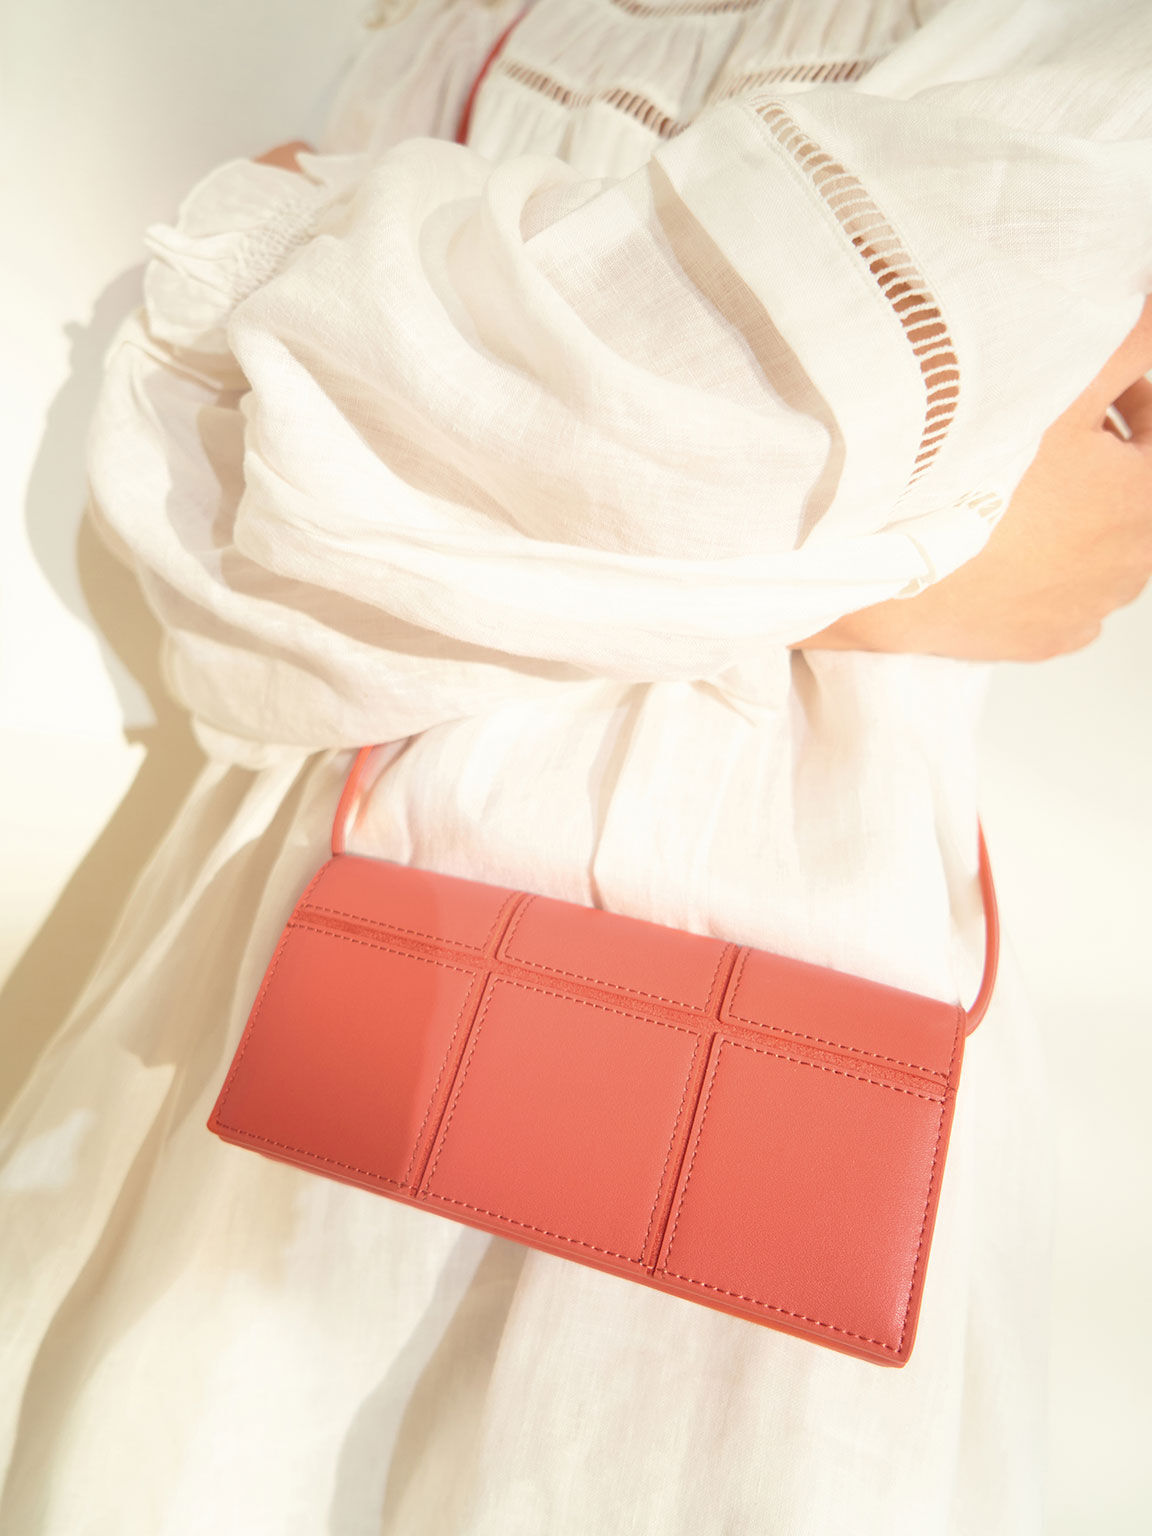 Panelled Long Wallet, Coral, hi-res